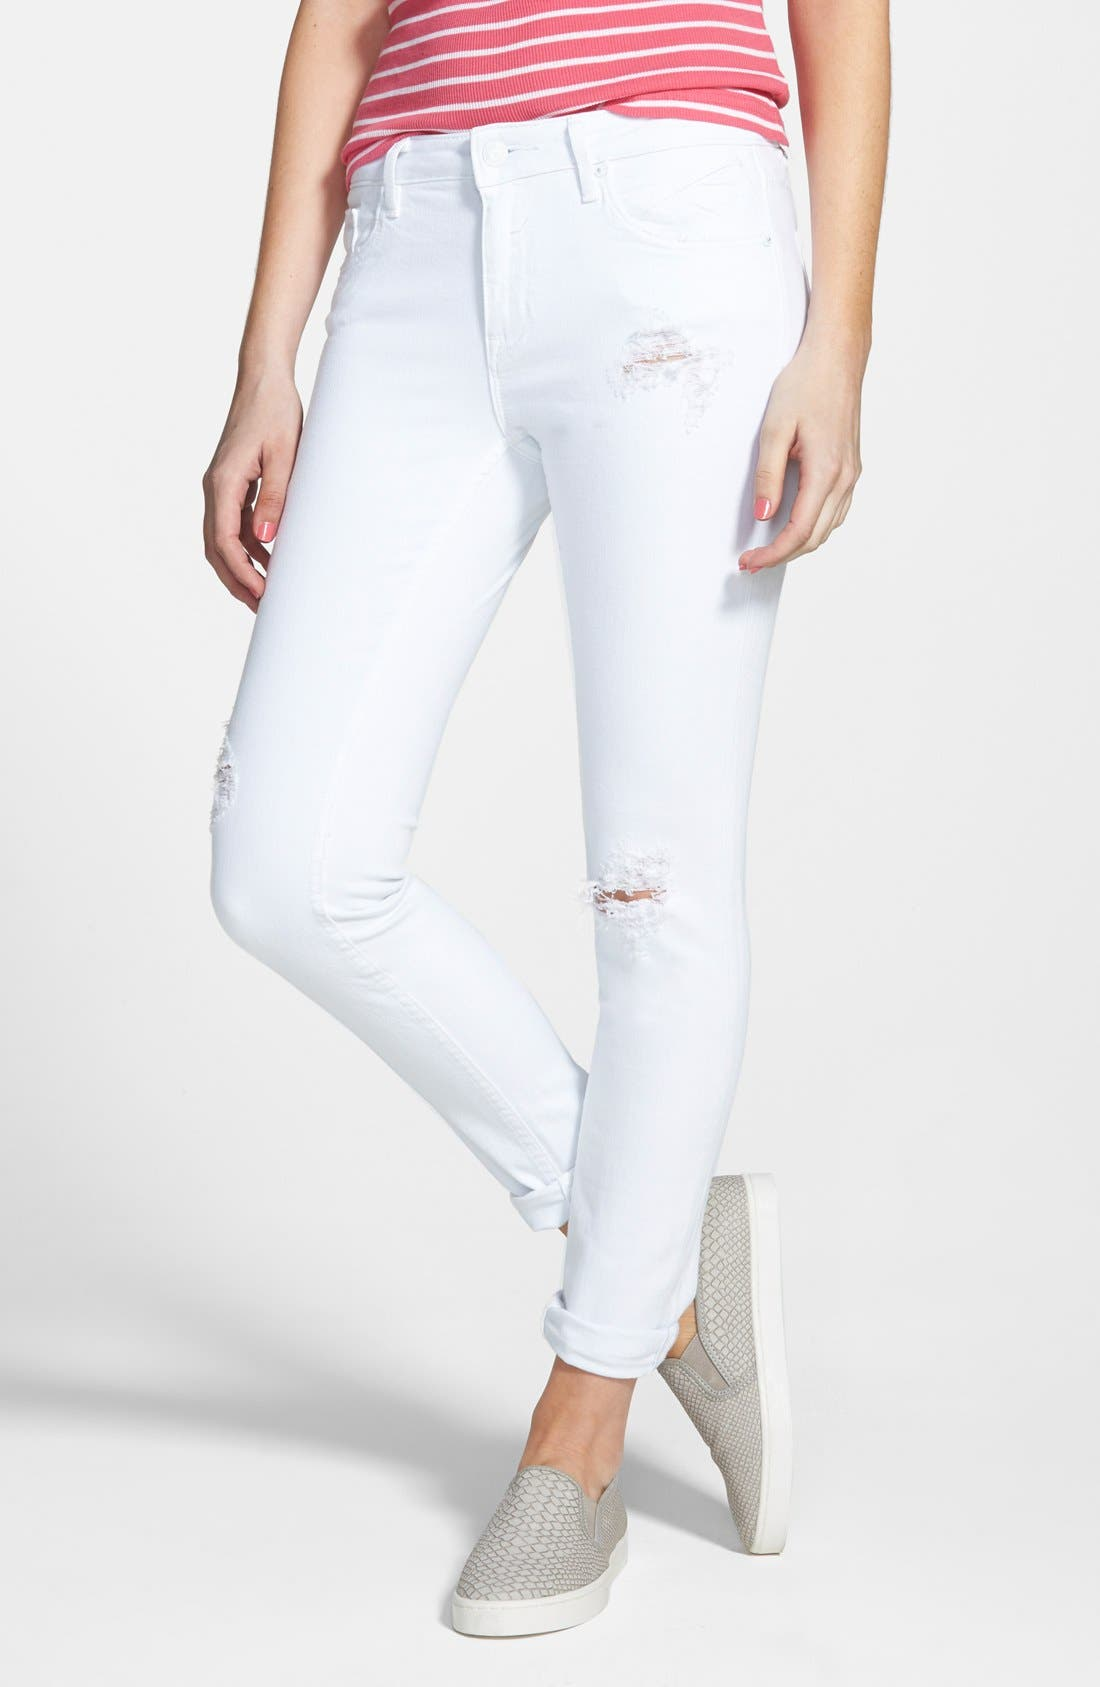 Alternate Image 1 Selected - Vigoss 'Tomboy' Destroyed Crop Skinny Jeans (White)